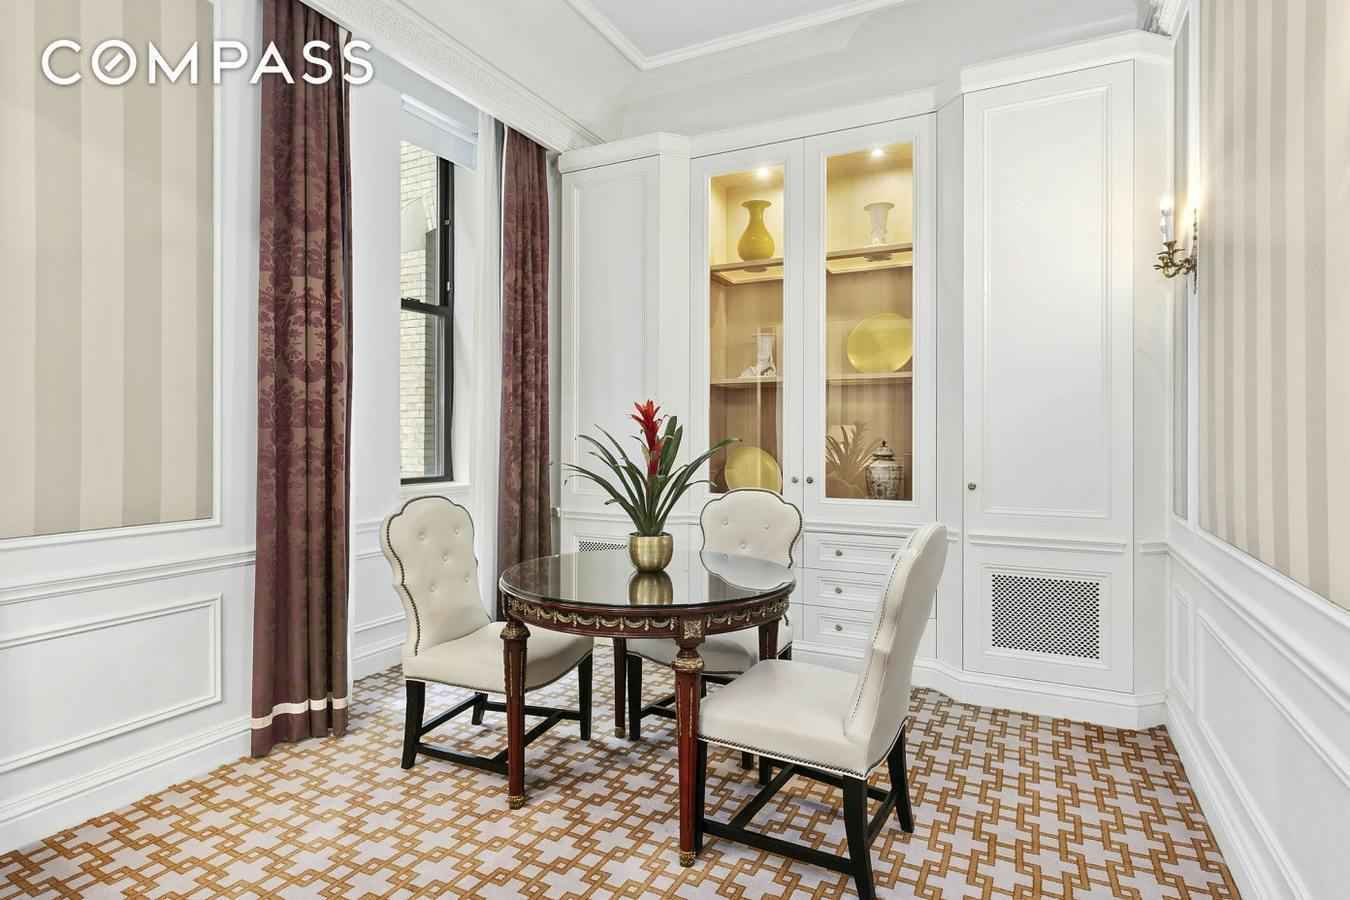 Apartment for sale at 2 East 55th Street, Apt 822/18